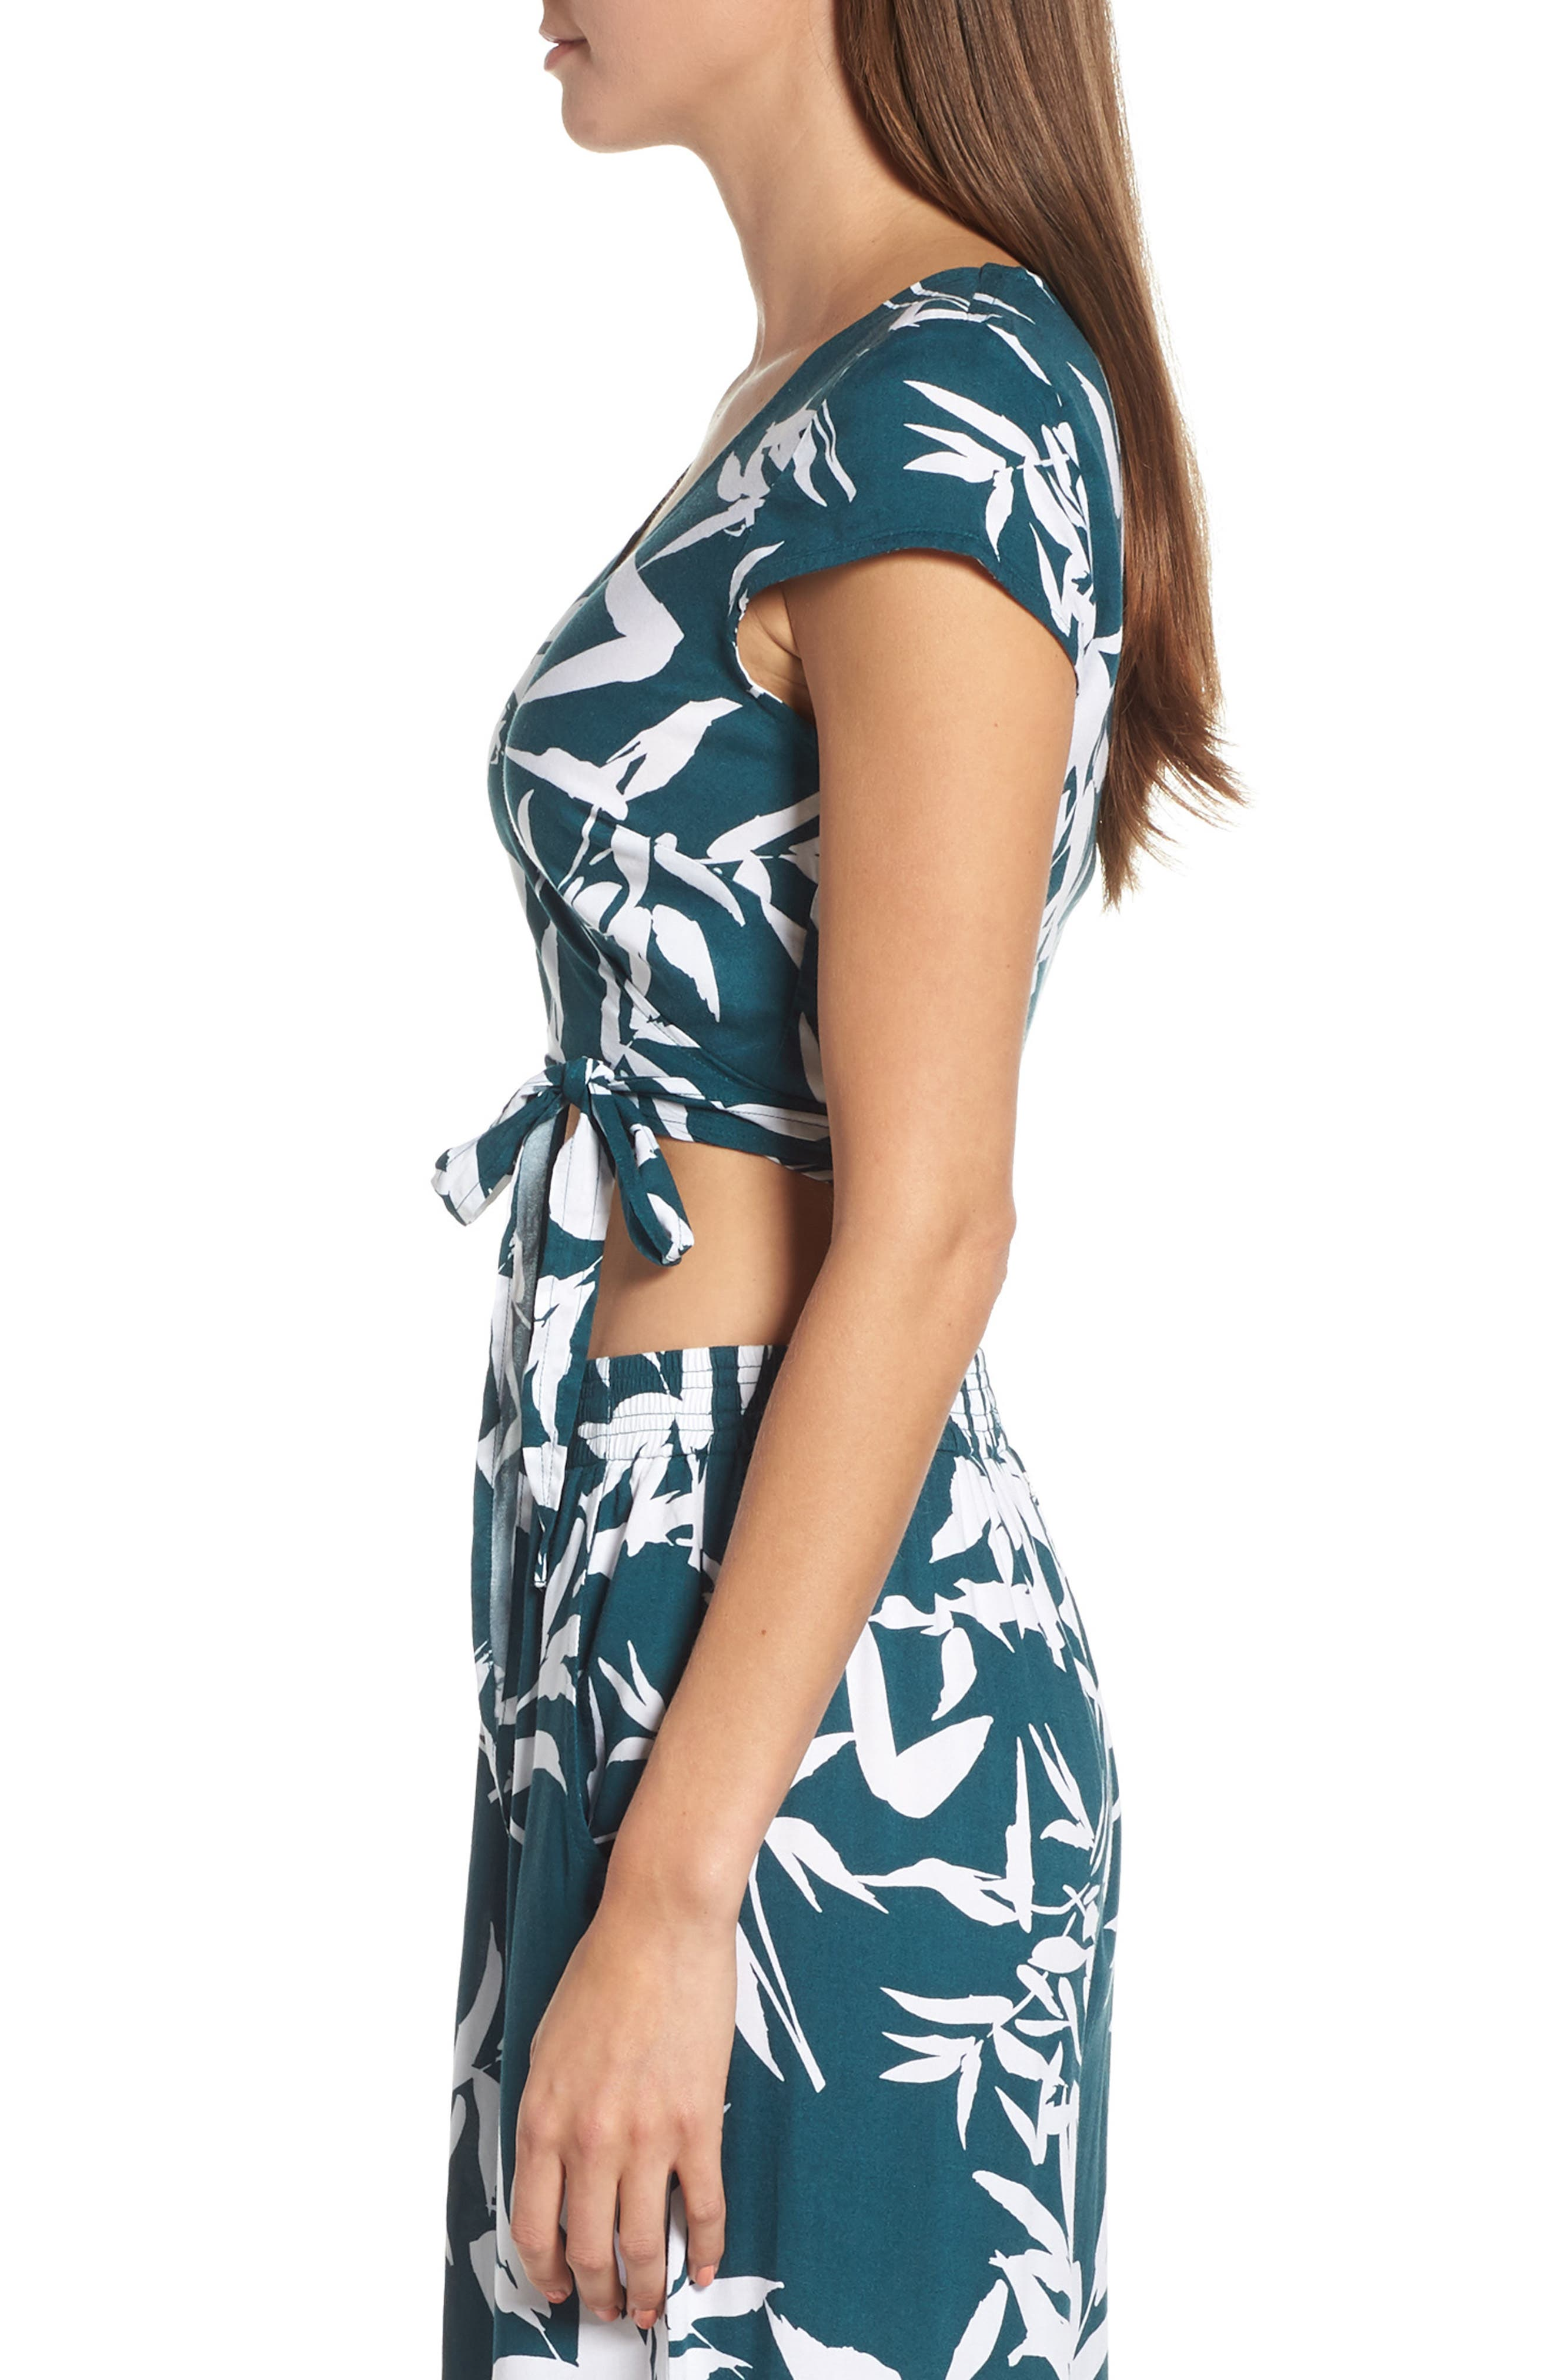 Calico Leaf Print Wrap Top,                             Alternate thumbnail 3, color,                             300